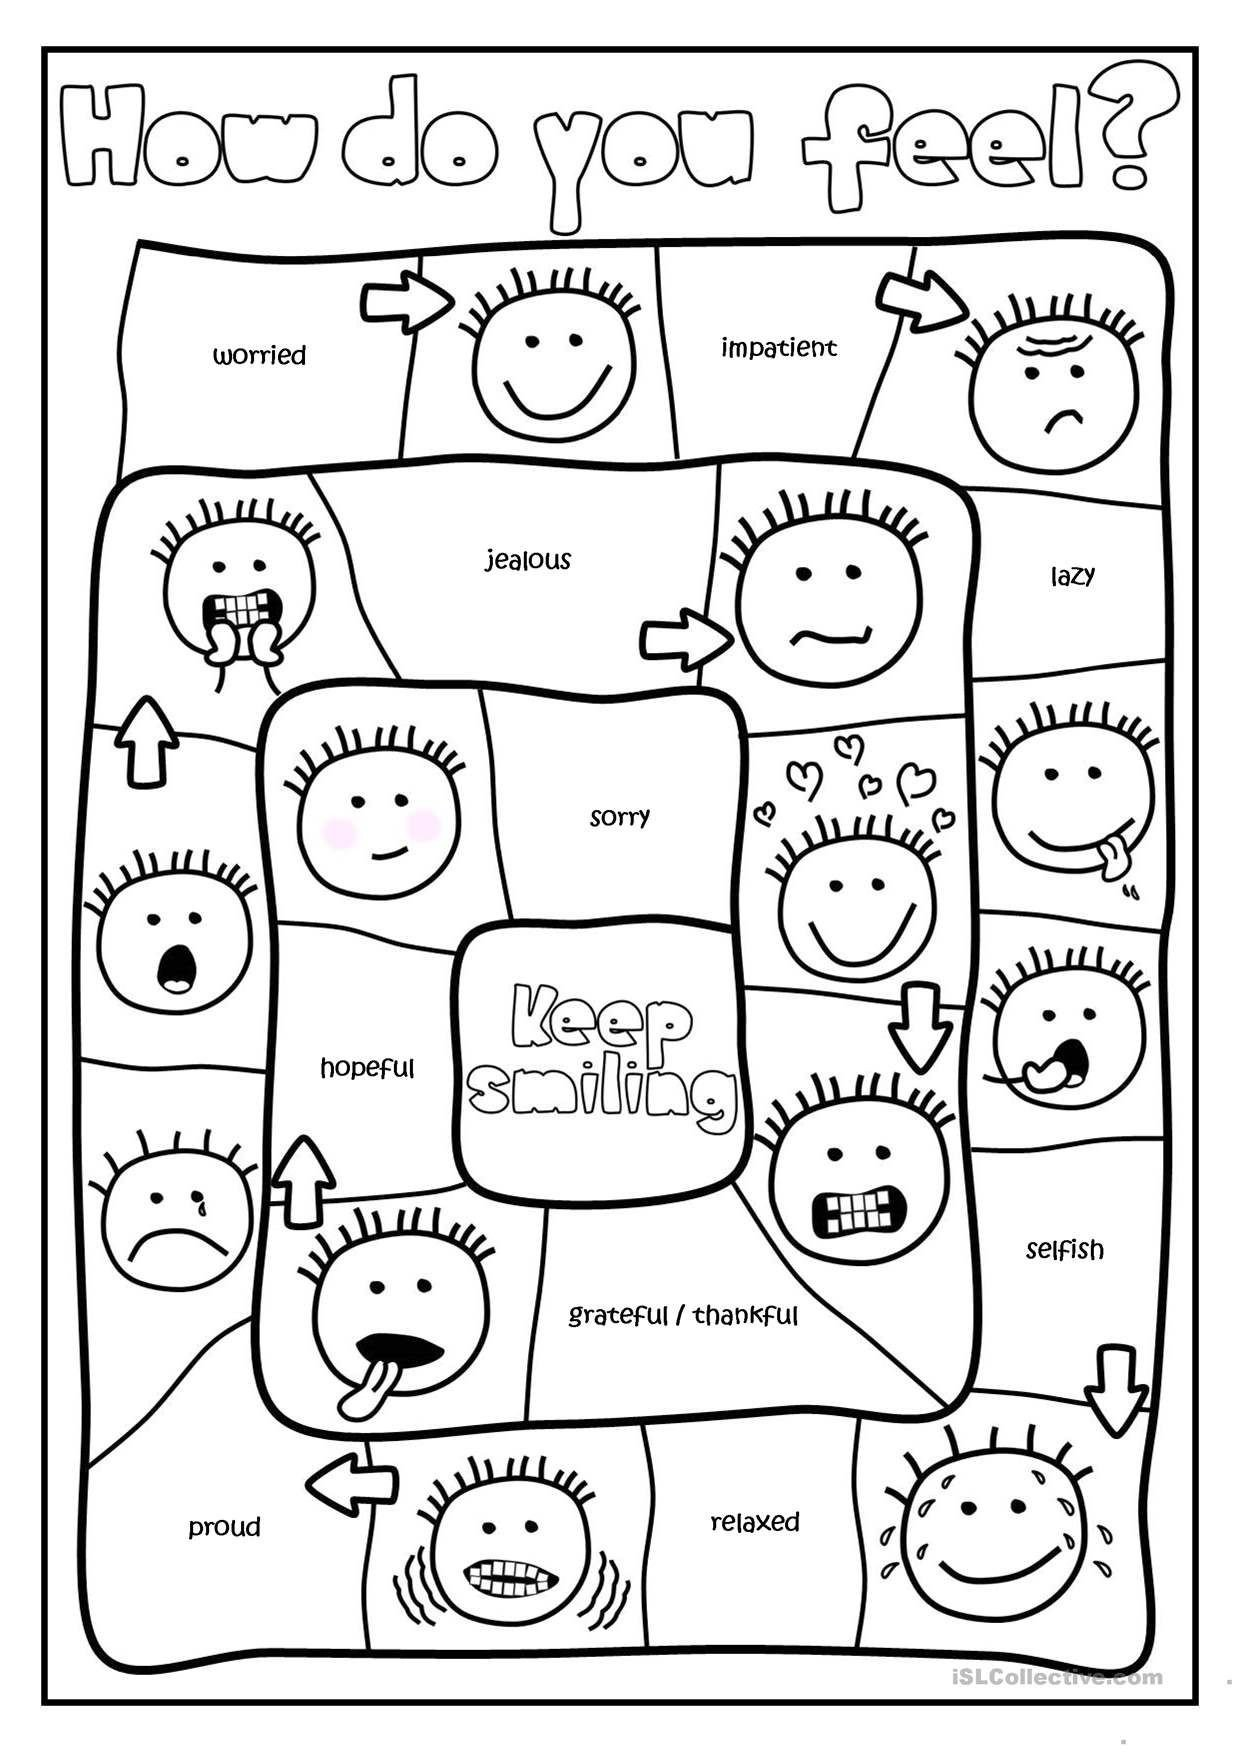 Free Printable Feelings Worksheets Free Printables and Activities On Feelings and Emotions